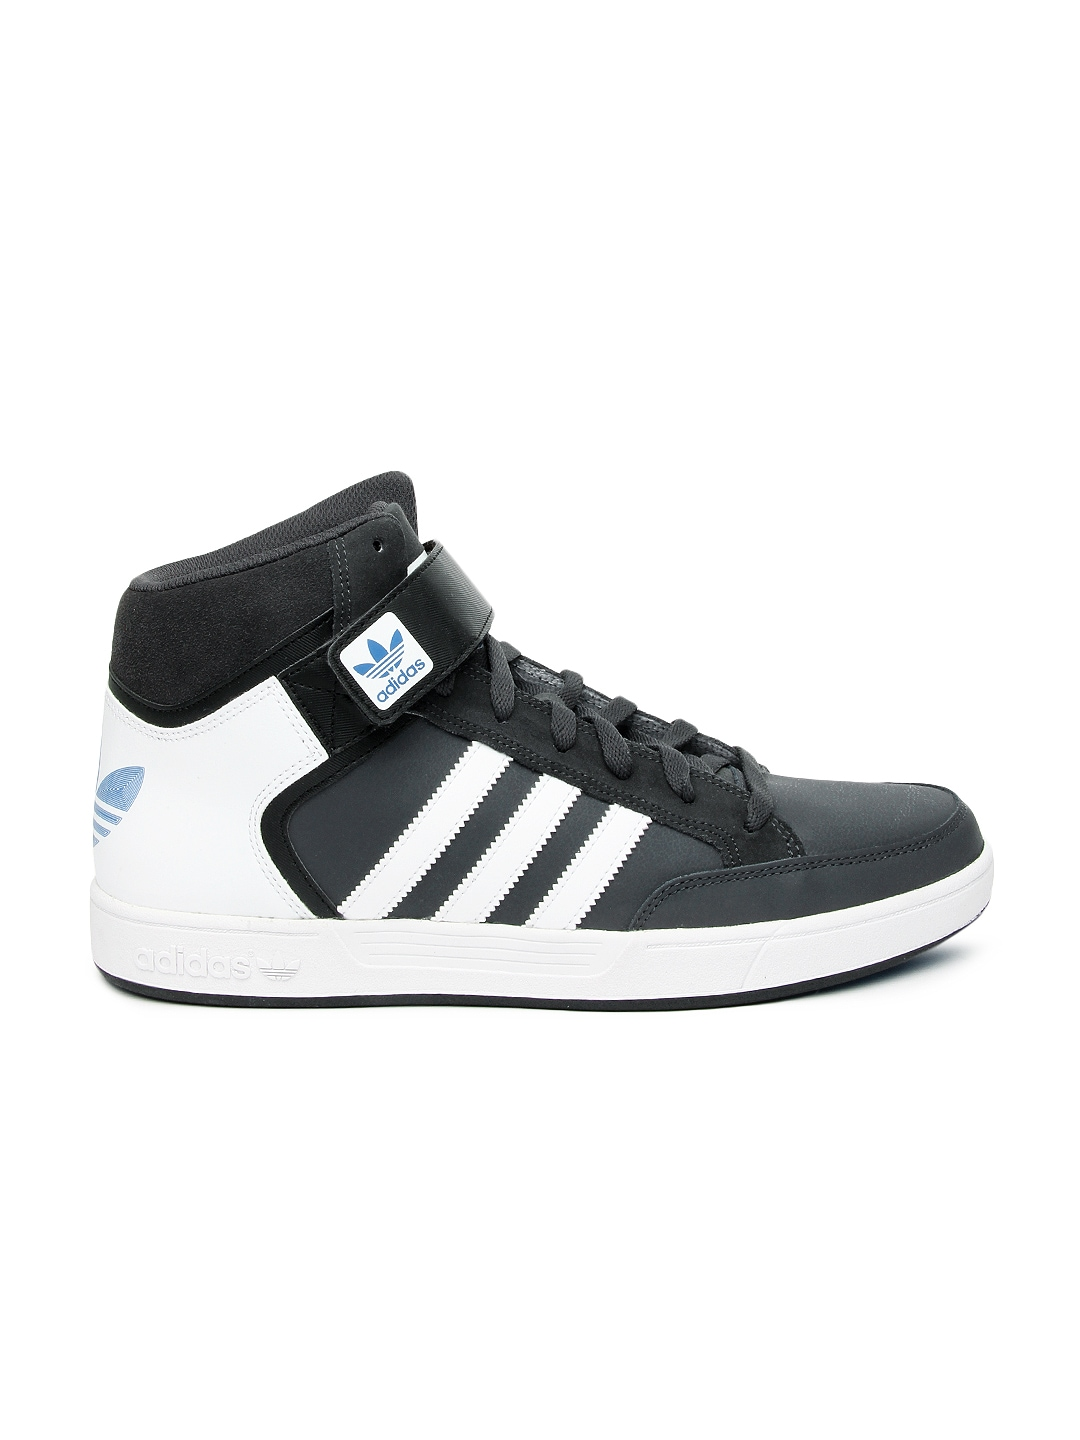 Adidas korting Off55 Shoes Buy Originals India ZqxT14w1